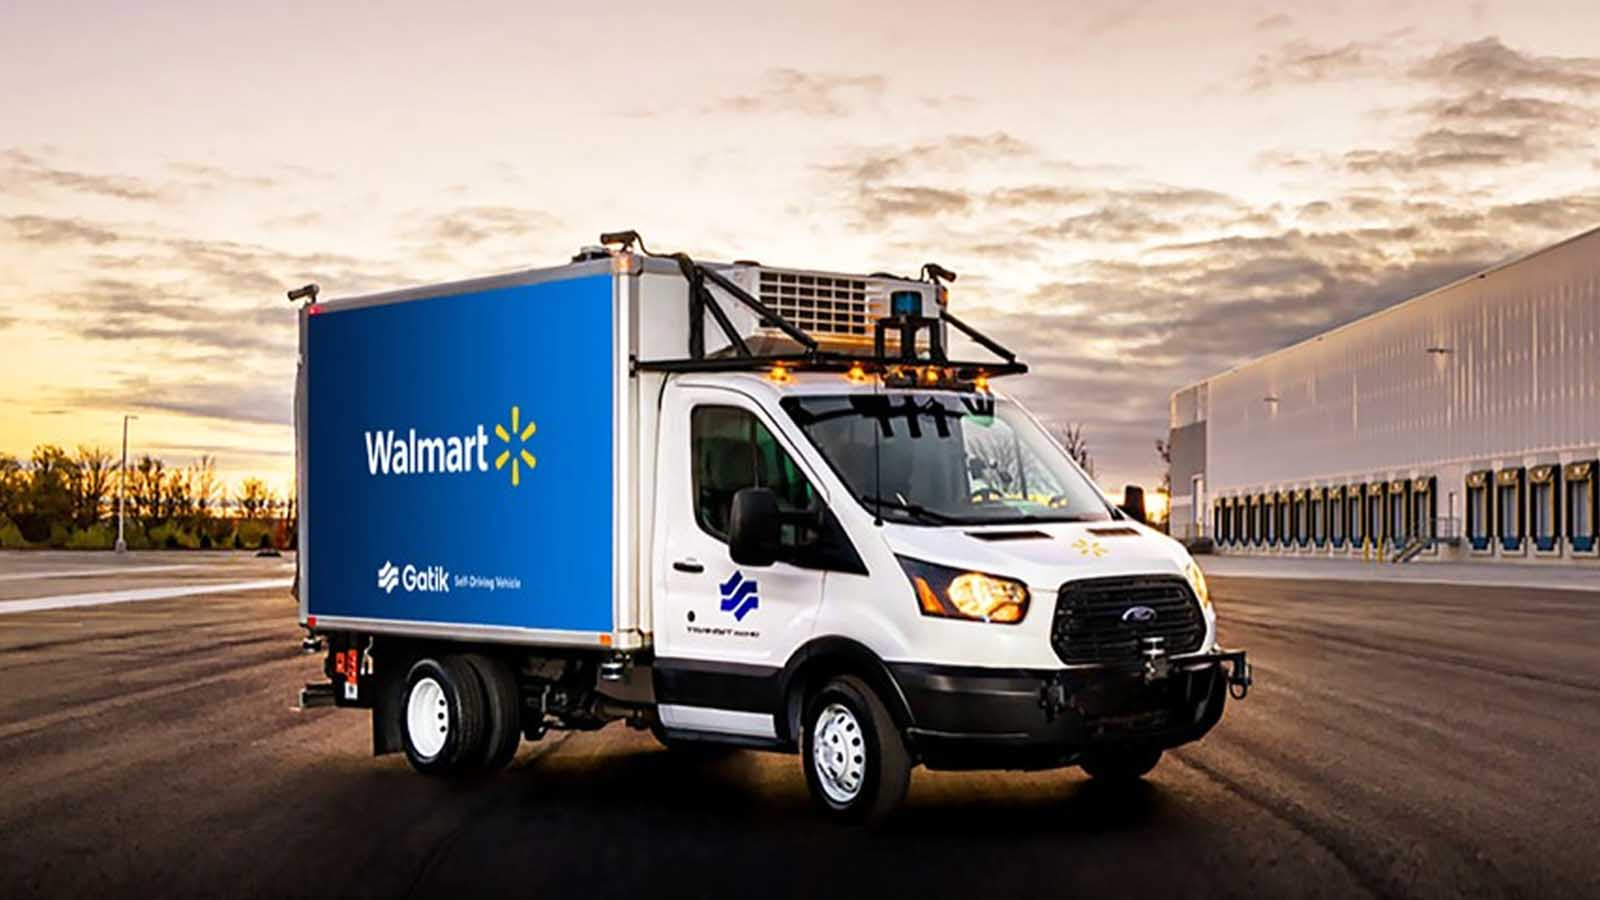 walmart self-driving delivery truck